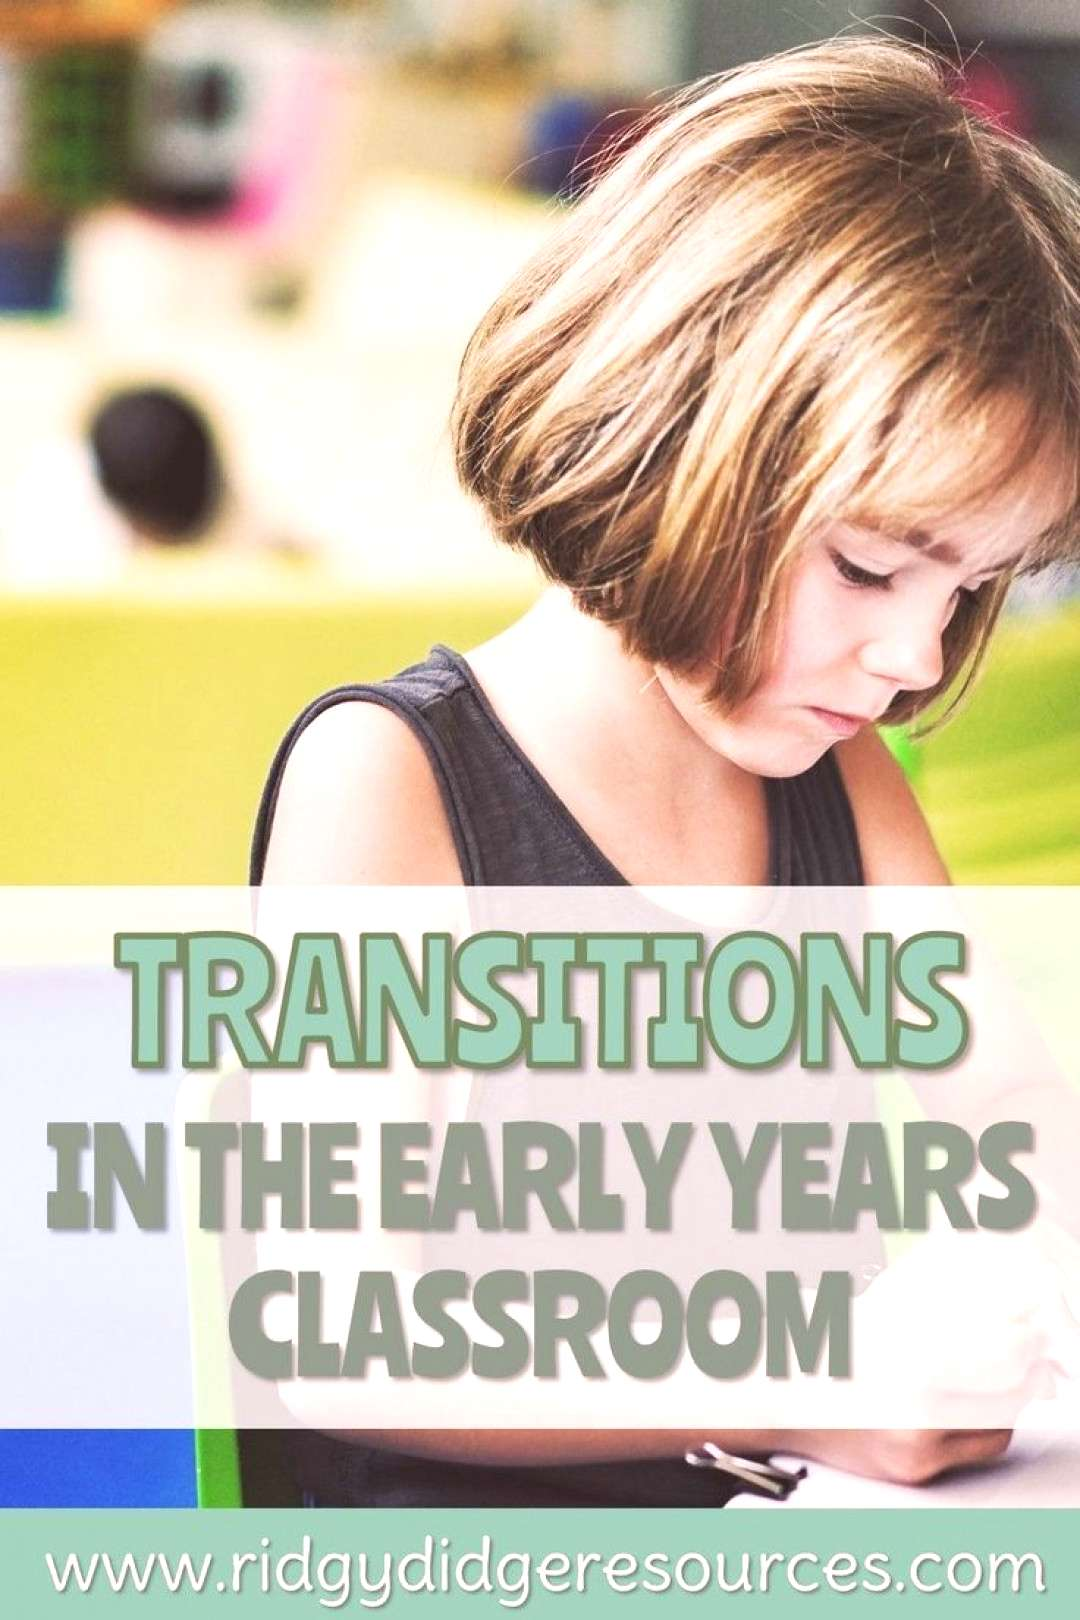 Childrens health   teaching strategies for early childhood, early childhood learning, toddler ma